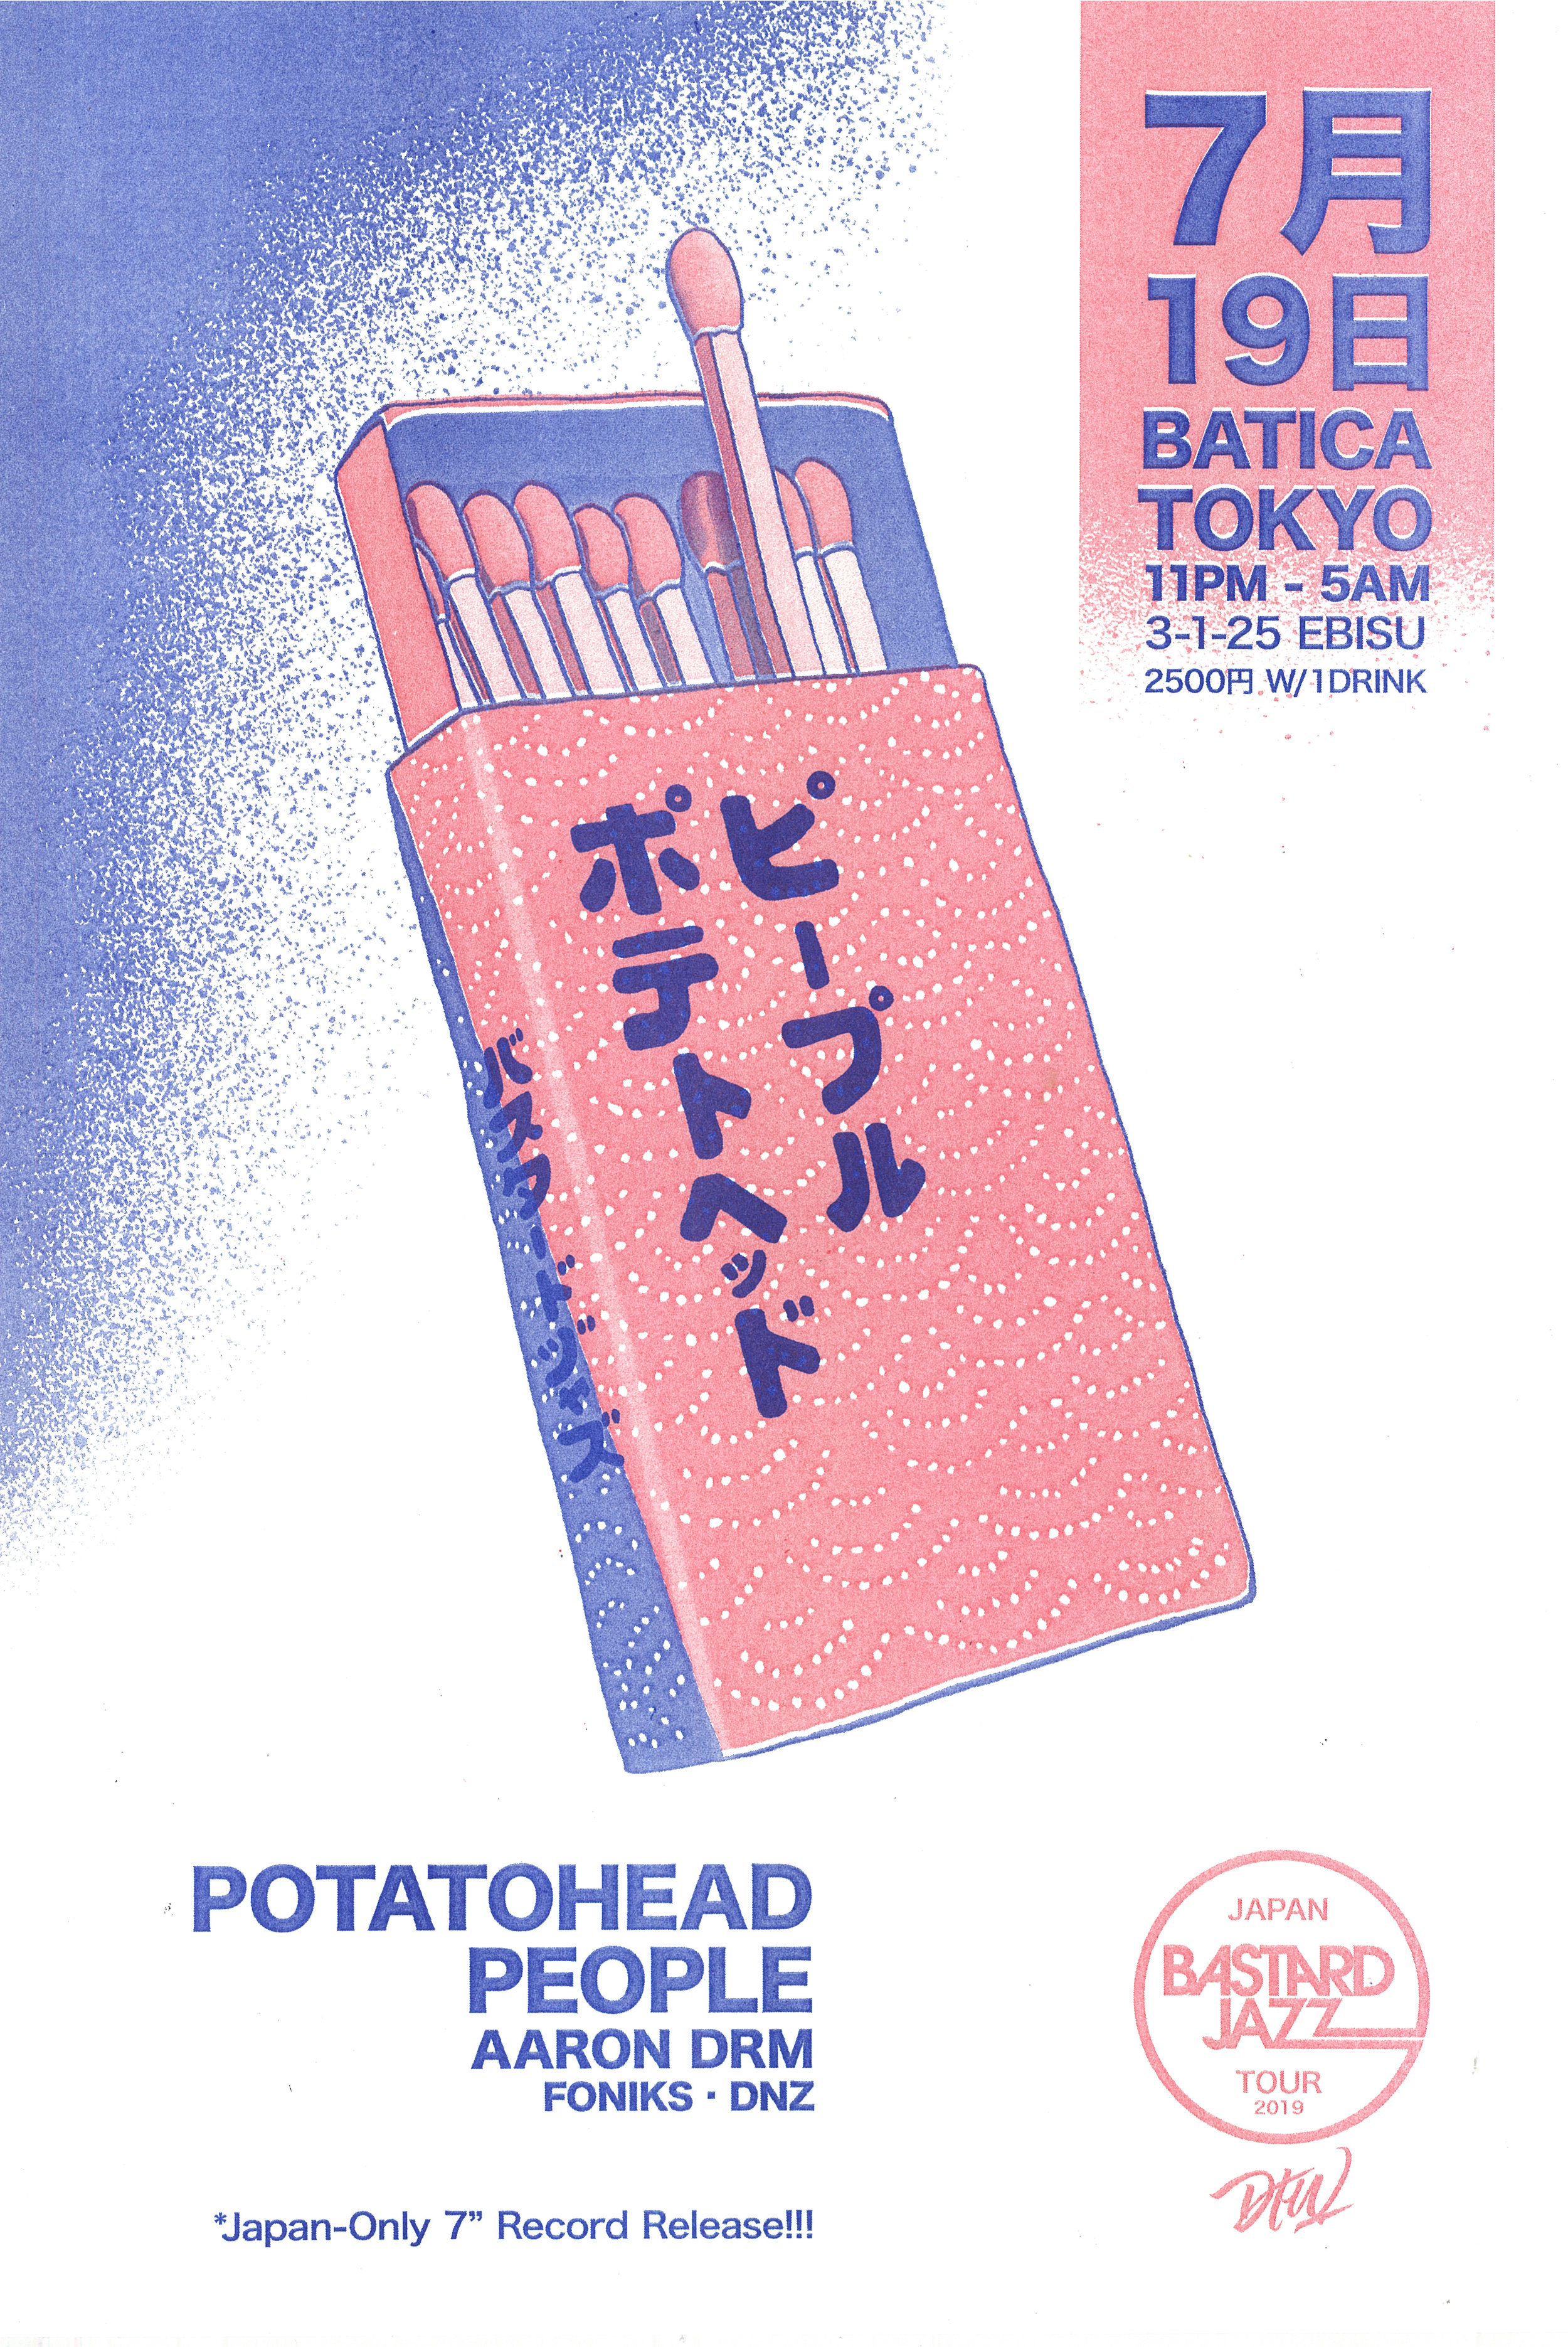 "POTATOHEAD PEOPLE & BASTARD JAZZ JAPAN TOUR 2019  Friday, July 19th  @Batica in Ebisu  11pm-5am / 23:00-29:00  2500円 w/ 1 drink     Potatohead People's Nick Wisdom (Vancouver) and Aaron DRM from famed New York record label, Bastard Jazz, will be kicking off their Japan 2019 tour in Tokyo in collaboration with Darker Than Wax. Vibes will be on high, with a blend of Hip Hop, Soul, Boogie, Modern Funk, House, Latin, Brazilian, Afrobeat and more.   To get the things started, Tokyo-based Funk technician, Foniks (Darker Than Wax), and party-rocking turntablist DNZ (The Breakdown Shibuya / San Francisco Bay Area) will be gassin' you up before the main acts crank up the heat. And, for all the record heads, Bastard Jazz has pressed an exclusive, Japan-only white label 7"" just for this tour, including one unreleased track from Potatohead People and another from Foniks.   There are only 200 copies, so make sure to come to the event and grab yours!   Limited edition shirts and other merch will also be available.   If you're one of the lucky few to grab a flyer that has a colored dot on it, bring it to the event and you'll get a FREE piece of merch, like a download, stickers, a shirt, or maybe even a 7"".      ——————————————————————————————————————————————————   Nick Wisdom  (Potatohead People, Canada)     Nick Wisdom is a Canadian Record Producer/DJ. Operating as both a solo artist & ½ of producer-duo Potatohead People, he has been releasing music since 2011. Since then, Wisdom has worked with many artists such as Illa J, Reva Devito, Phife Dawg, Kaytranada, Beatchild, T3, Moka Only, Amalia, A l l i e, K-Maxx, Trailer Limon and Ivan Ave. He is a RedBull Music Academy Bass Camp and Playlist Retreat alumni. Nick's productions have landed placements with Netflix, Mercedes-Benz, Powerade & EA's NBA LIVE 2K16 and have been championed early by the likes of Soulection, Okayplayer, DJ Jazzy Jeff, Big Boi, Questlove and more. As a DJ & avid record collector, Nick's selections float between Hip-Hop, R&B, 80's Boogie, Modern Funk & House music. Bouncing back and forth between Vancouver & Montreal his sound has found its way to dance floors from Shambhala, Basscoast & New Forms to Igloofest, Piknic Electronik & Voyage Funktastique. Based in Vancouver, catch his radio show Polar Radio co-hosted by Kutcorners on NFR every Friday from 12-2pm PST.      https://potatoheadpeople.com/    http://www.nickwiz.biz/    https://soundcloud.com/nickwisdom    https://soundcloud.com/potatohead-people   ----------------      Aaron DRM  (Bastard Jazz & Wonder Wheel Recordings)     AARON DRM / DJ DRMAs co-founder and label manager of both Brooklyn's Bastard Jazz Recordings and Wonderwheel Recordings, alongside partner-in-crime Nickodemus -Aaron DRM has been fortunate enough to travel the world playing records and representing two of NYC's longest running and most respected boutique record labels. As a globally respected tastemaker and A&R, Aaron is responsible for the discovery and signing of such acts as Captain Planet, Alsarah & The Nubatones, Lord Echo, Potatohead People, Manatee Commune and many more. A skilled DJ first and foremost for over 20 years, his sets are wildly eclectic, bringing in sounds from the tidepools of House Music & deeper electronic soundsfrom around the Globe, Dub & Reggae, Hip-hop, B-Boy Breaks, Latin, Brazilian, Disco, Afrobeat and much more -always aimed straight for the dancefloor.Aaron has toured extensively across the capital cities of Asia, Europe and South America, playing alongside the likes of Q-Tip, Cut Chemist, Afrika Bambaata, Peanut Butter Wolf, Quantic, ?uestlove, and many more. He maintains DJ residencies at the exclusive Boom Boom Room atop NYC's Standard Hotel, and at Thievery Corporation's Washington DC institution The 18th St Lounge.      http://www.bastardjazz.com    http://www.wonderwheelrecordings.com    https://soundcloud.com/bastardjazz    https://soundcloud.com/wonderwheel-recordings    https://soundcloud.com/aaron-drm   --------------------------      Foniks  (Darker Than Wax)     Originally from California, Foniks is currently based in Tokyo. Ever since cutting his teeth on college radio, he has been digging, DJing, and slapping pads on the MPC alongside respected DJs & international artists from the Bay to LA, NY, Vietnam and currently Japan. He runs a various events in the Shibuya area as a member of the Singapore based collective Darker Than Wax. His DJ sets are a special blend of flavors to satisfy the soul and move your hips, all united through a universal love for the Funk. You can find him at select events flexing engaging live MPC+Microkorg sets where he takes you on a journey through Funk/R&B-infused vibes, House inflected grooves, as well as improvised Footwork & Juke tracks which maintain a rawness that's unique in today's 'live' electronic music scene.      https://www.mixcloud.com/darkerthanwax/rekod-03-foniks/    https://www.mixcloud.com/FONIKS/stream    https://www.instagram.com/foniksbumps   ------------------------------      DNZ  (The Amazing Zoo Crew, The Breakdown Shibuya)     DnZ is, amongst many things, a DJ, producer, journalist, publicist, promoter, graffiti artist, lover of all fine women and the ""World's Tallest DJ"" at 6'7"". A San Francisco Bay Area native, currently residing in Tokyo, is now reaching even farther depths of the music world with his own style of music and DJing by playing his beats out live, remixing on the fly with sampling while rocking the crowd as a turntablist in the undergrounds of Japan, Asia and the States.     Battling from 2002-2007 in the local as well as the DMC and ITF battle scenes as well as DJing on-air both internationally and nationally on KALX, KPFA, KSFS, KZSU, NY/NJ Radio Station WFMU, UK's BBC1, Pirate Radio, Internet Radio Shows as well as producing/hosting/DJing for one of his crews own internet show Amazing Zoo Crew Radio on AllDayPlay.fm, he has produced many tracks with notable artists and  hosted many events in conjunction with major labels and brands. He currently is one of the organizers and resident DJ's at Tokyo's longest running hip-hop event in Shibuya called The Break Down.     With an early start in his career, at age 13, he had his beginnings in Hip Hop with graffiti and b-boying. But it was not until after listening to a tape by Invisibl Skratch Piklz and Beat Junkies, which he said ""listening to them sucked me into the whole scratch world."" Since then, being able to reproduce his beats live and keeping true to  his turntablist roots by flipping doubles, juggling and adding scratches. DnZ has been making noise in the beat scene as not only a producer, but as a performer as well.     Sharing stages with some of the worlds best DJ's, Producers and MC's such as Members of the Wu-Tang Clan the RZA and Ghostface Killah, The World Famous Beat Junkies DJ Babu, Rhettmatic, Melo-D, Icy Ice and J-Rocc, Members of Invisible Skratch Piklez DJ Q-Bert and Shortkut, 3x World DMC Champ DJ Kentaro, Shing02, Dibia$e, Joob, Charli2na, DJ Neil Armstrong, Ali Shaheed Muhammad, Souls of Mischief, DJ Z-Trip andHouse Shoes to name a few."